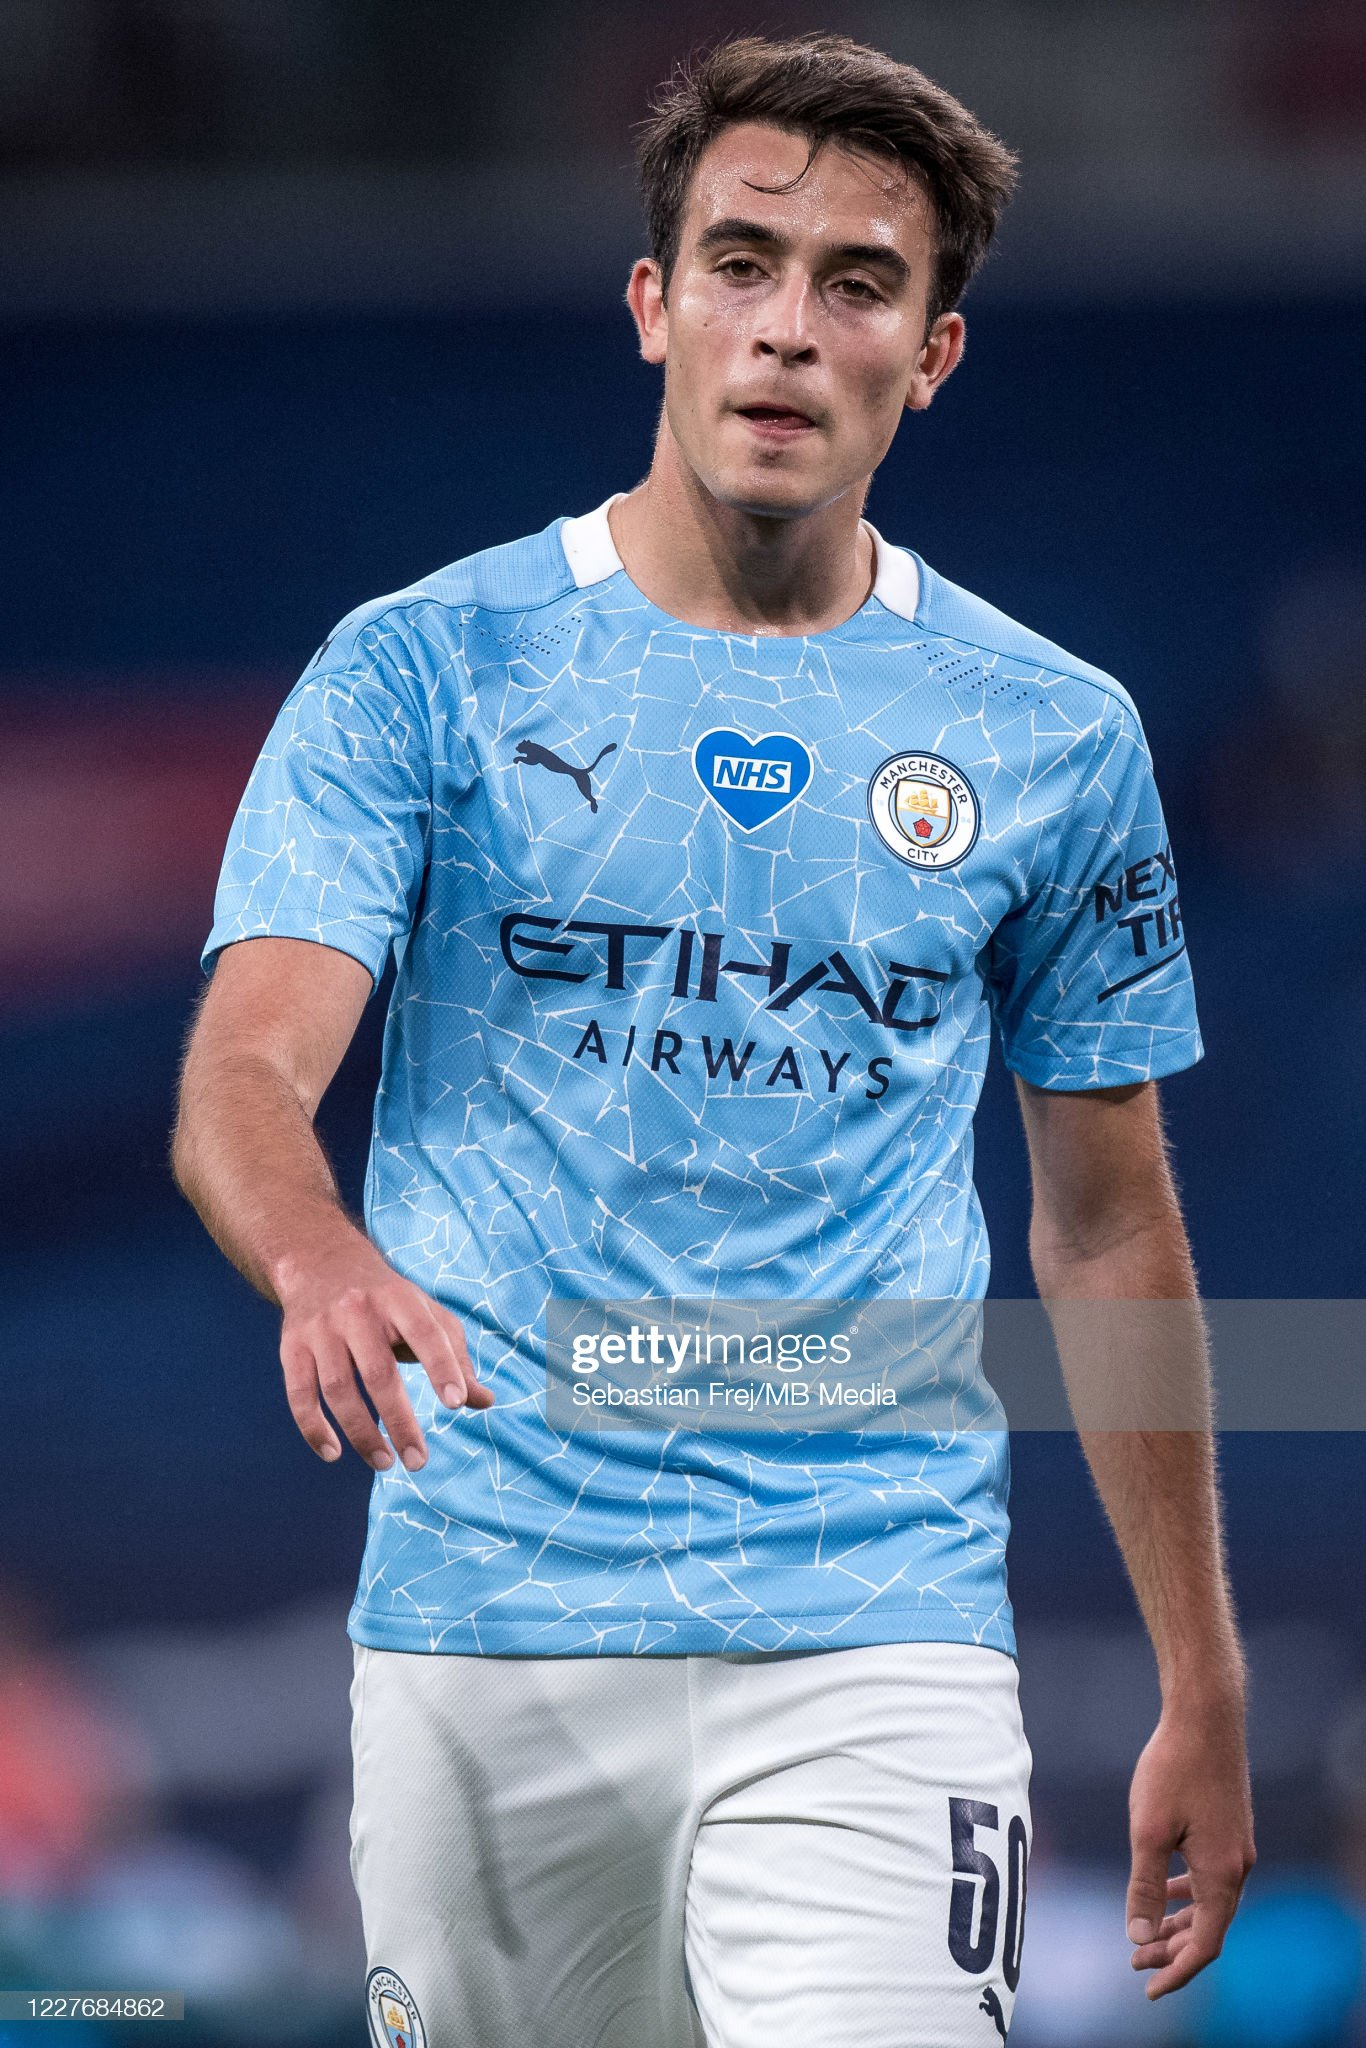 ¿Cuánto mide Eric Garcia? - Altura real: 1,79 - Real height Eric-garcia-of-manchester-city-looks-on-during-the-fa-cup-semi-final-picture-id1227684862?s=2048x2048